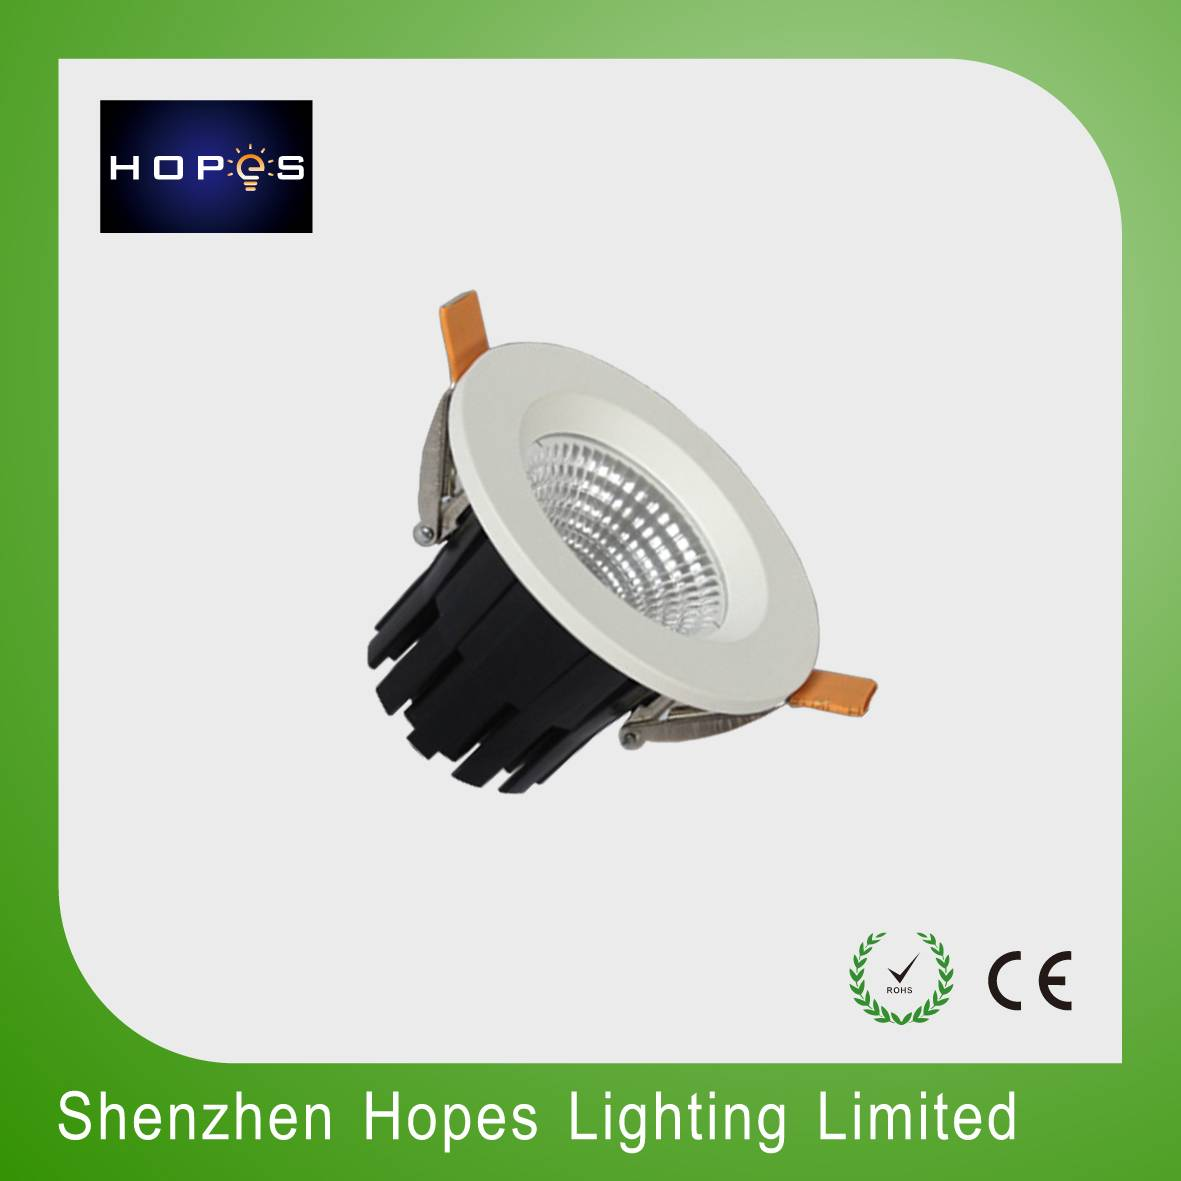 2.5'' COB 7W led down light ceiling spot